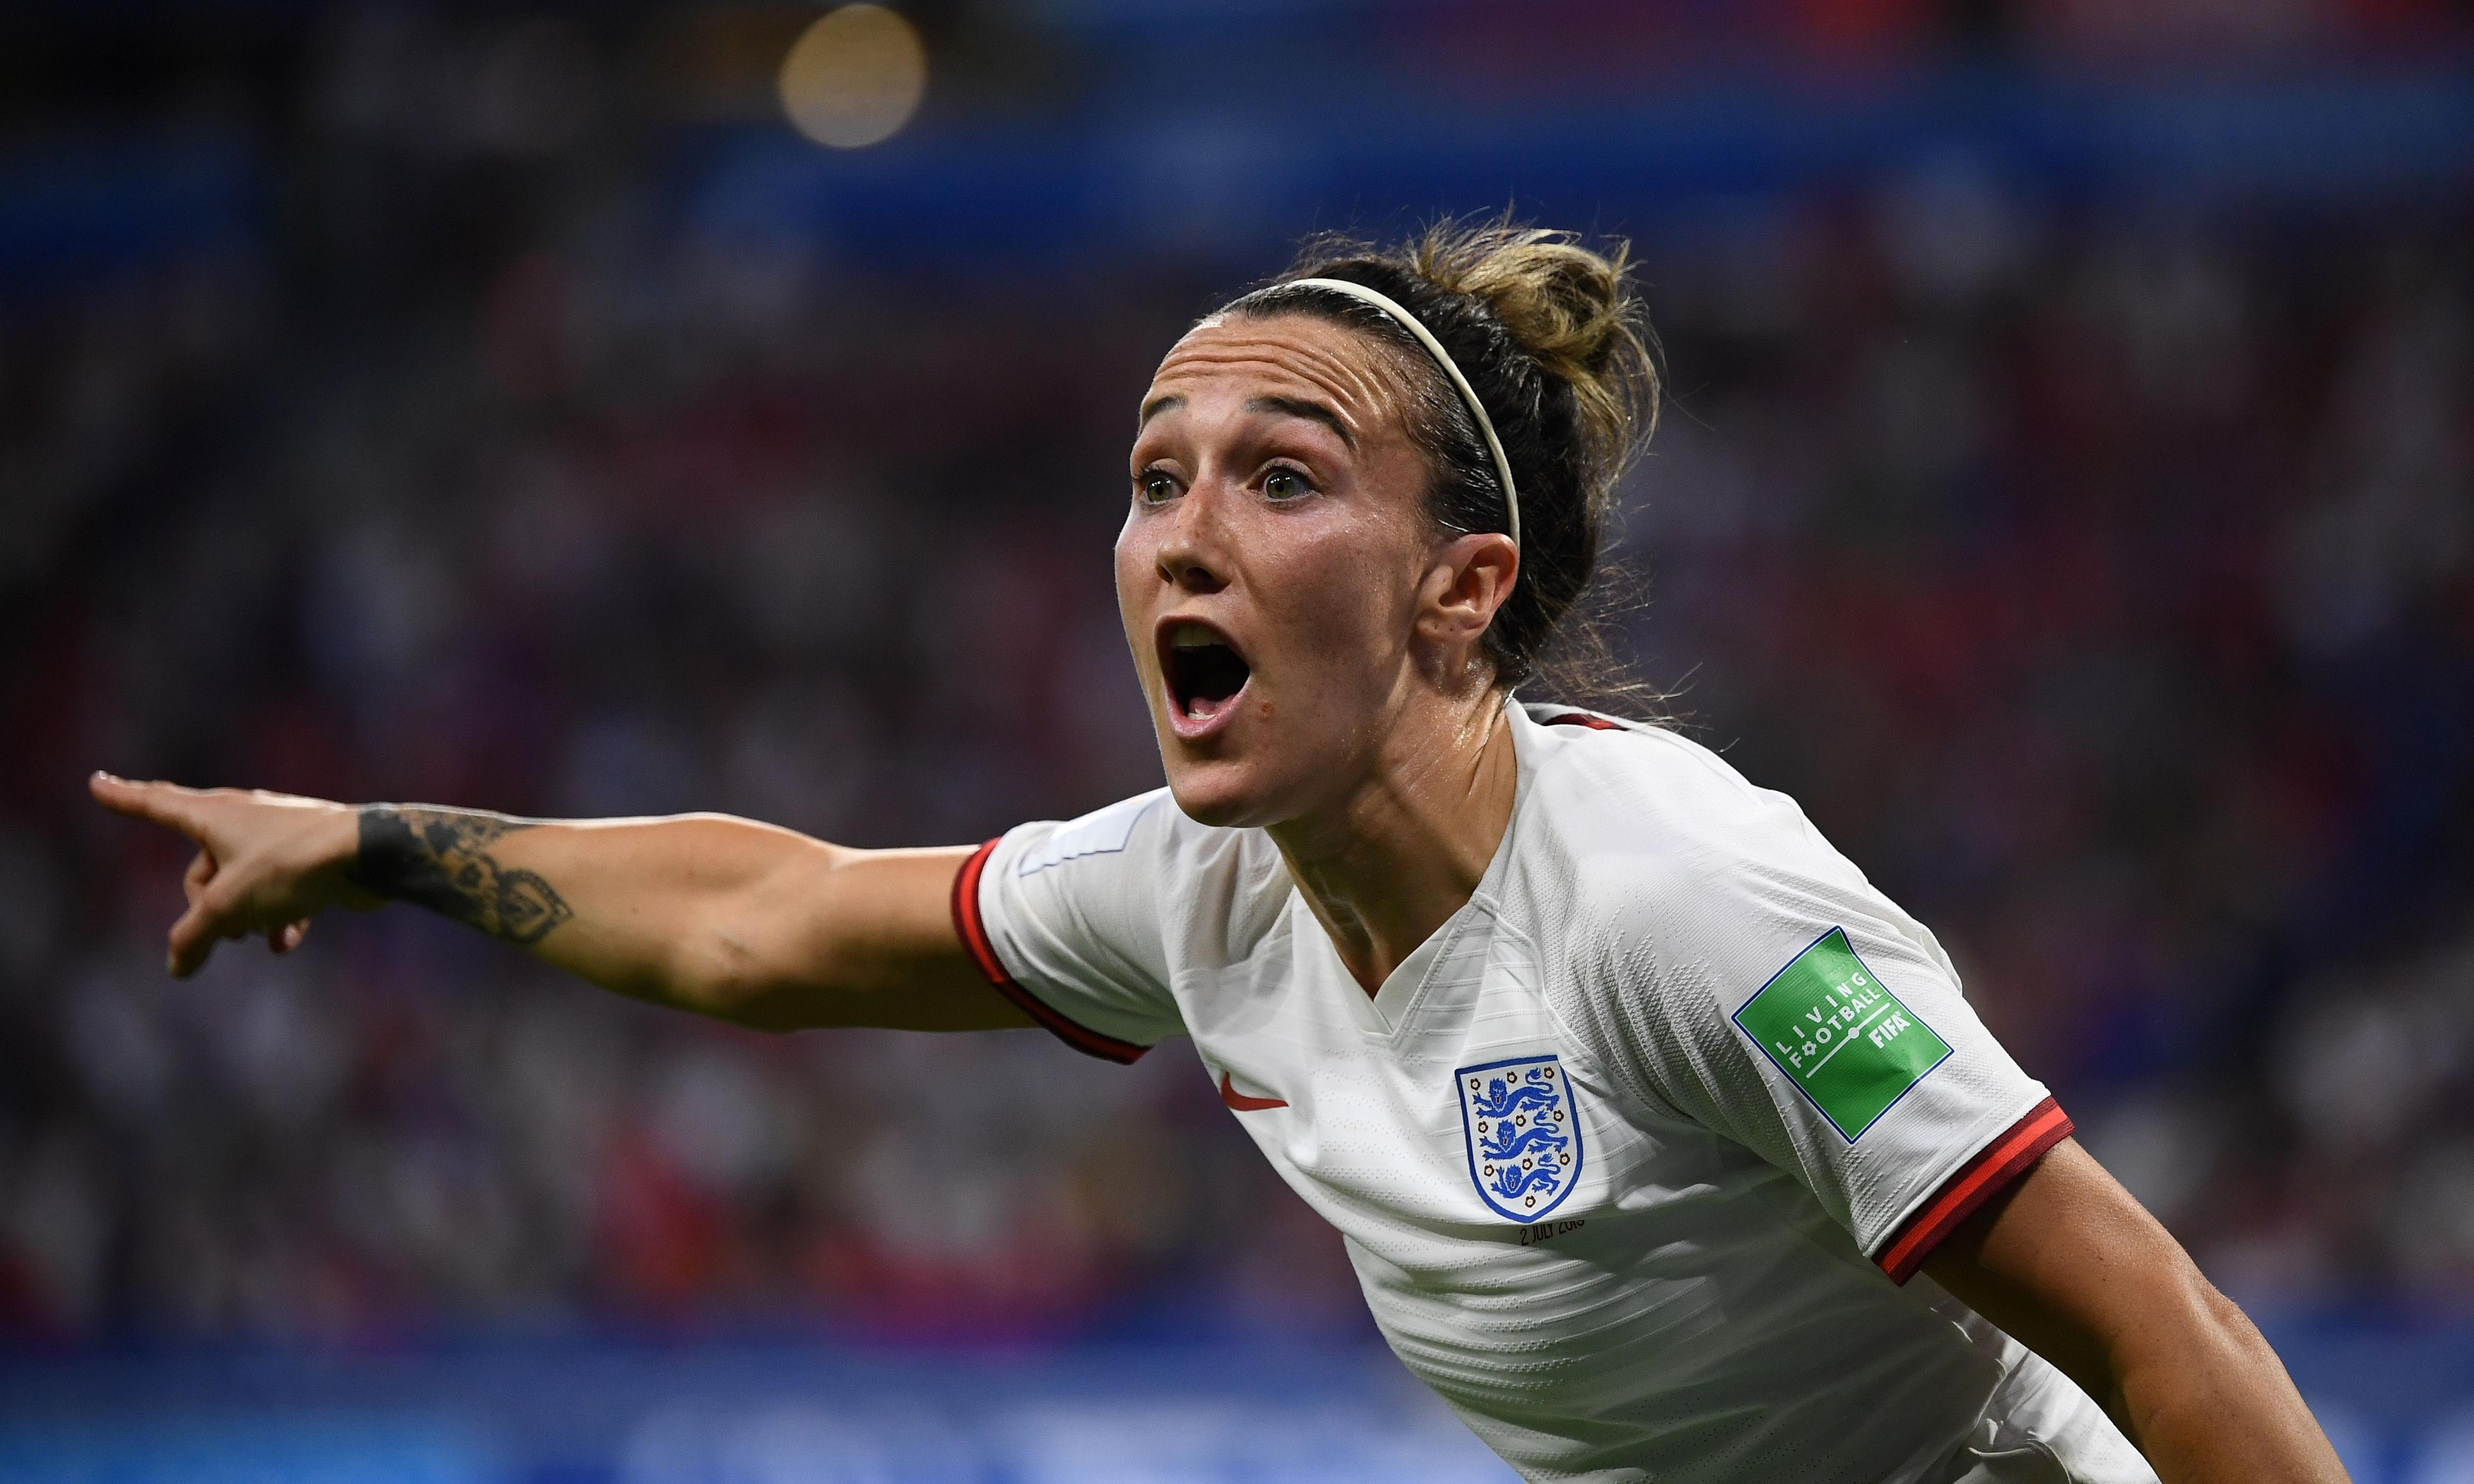 England will go on to win a trophy after World Cup exit, says Lucy Bronze